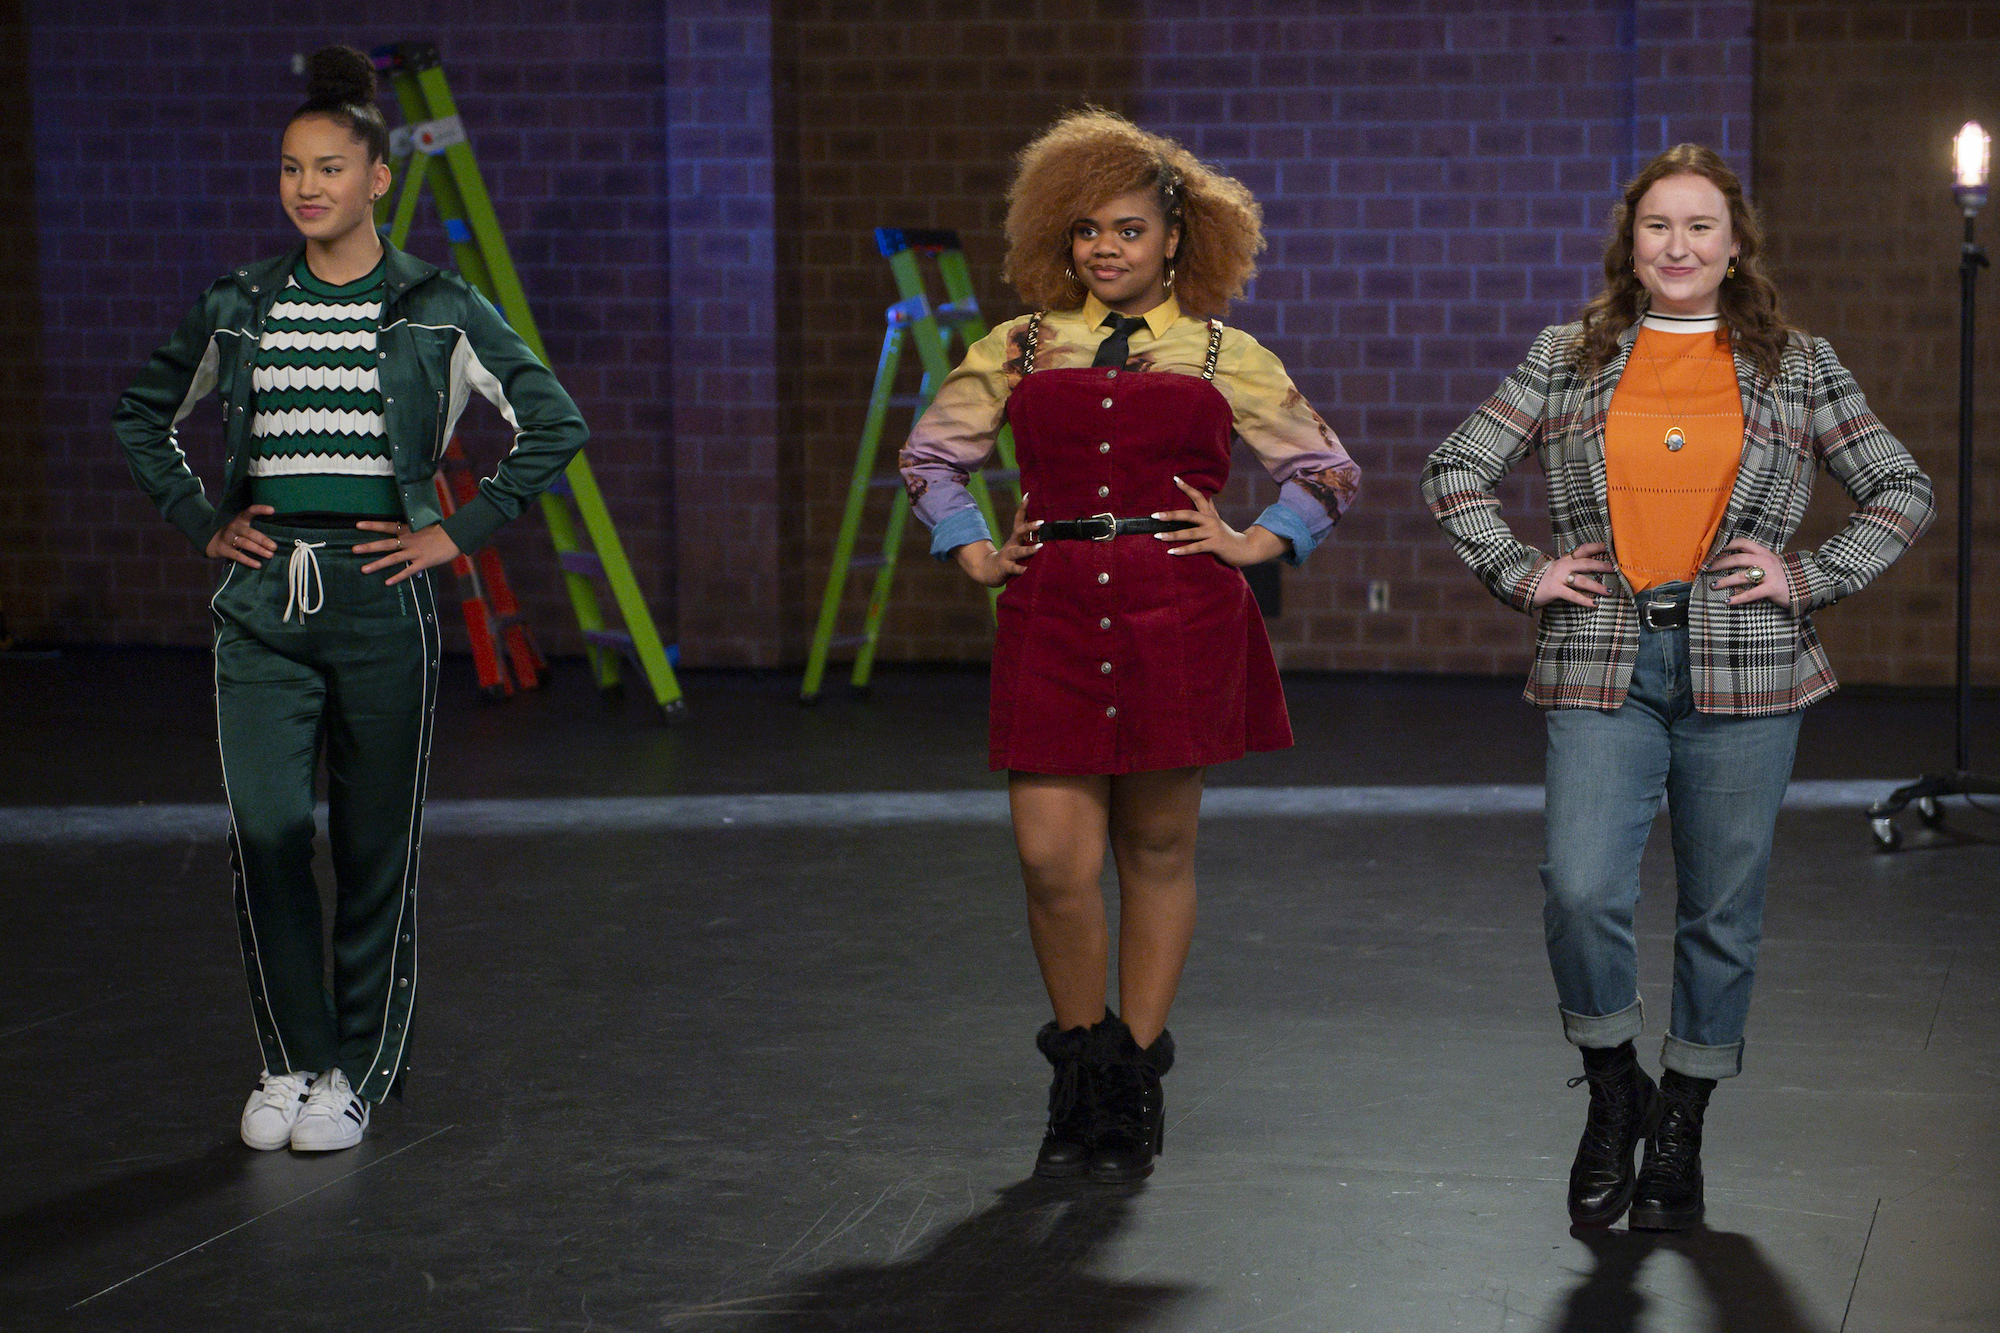 Sofia Wylie as Gina, Dara Reneé as Kourtney, and Julia Lester as Ashlyn in Episode 2 of 'High School Musical: The Musical: The Series' Season 2 | Disney+/Fred Hayes